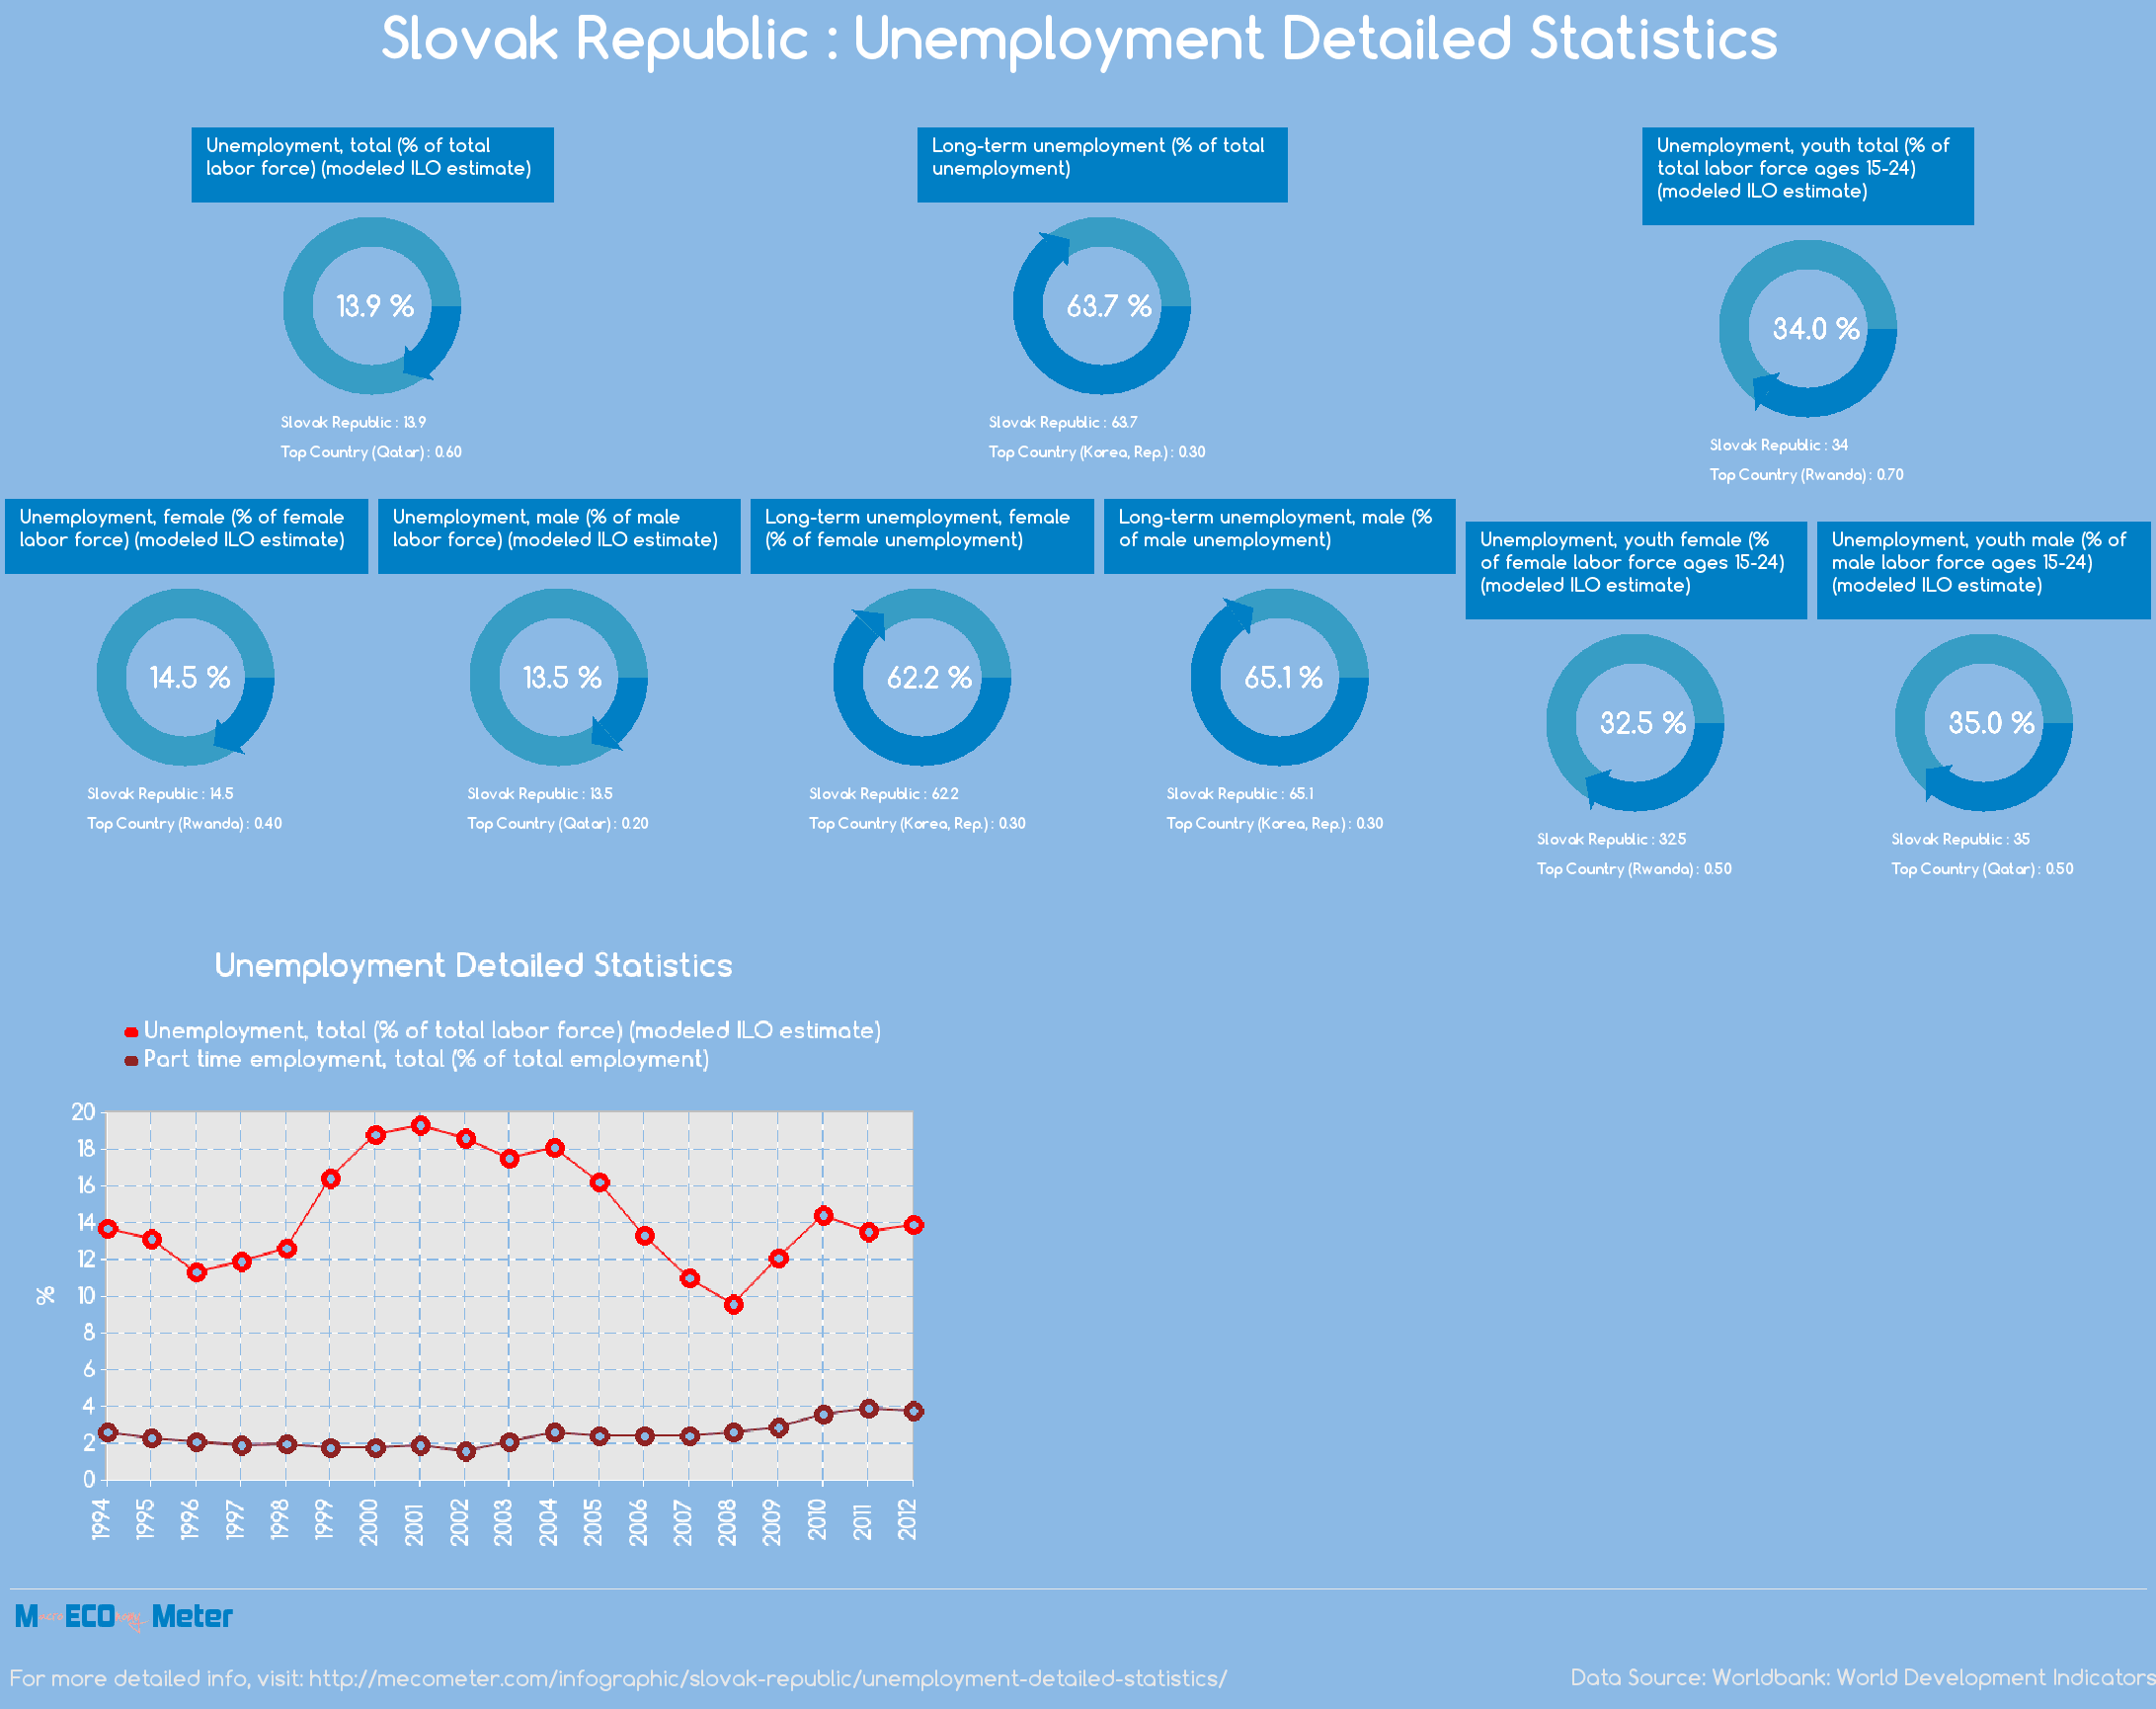 Slovak Republic : Unemployment Detailed Statistics